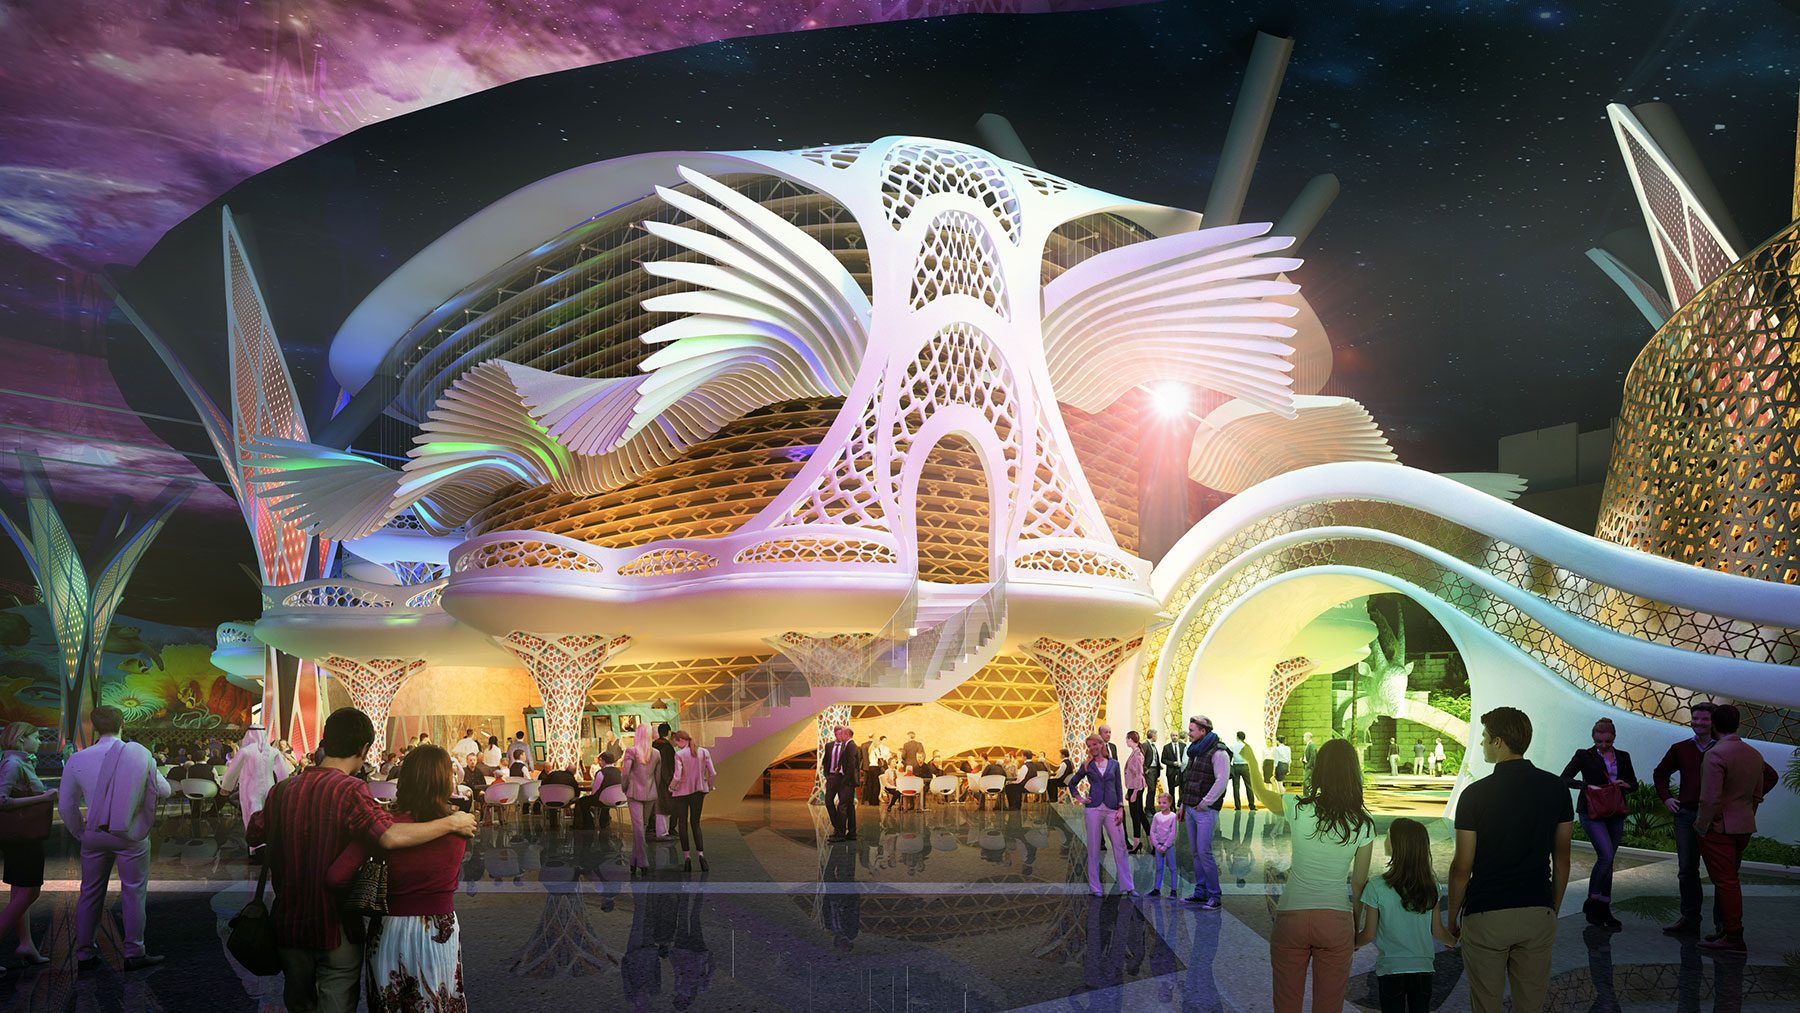 101-Flying-Theater-Exterior-Facade-Render